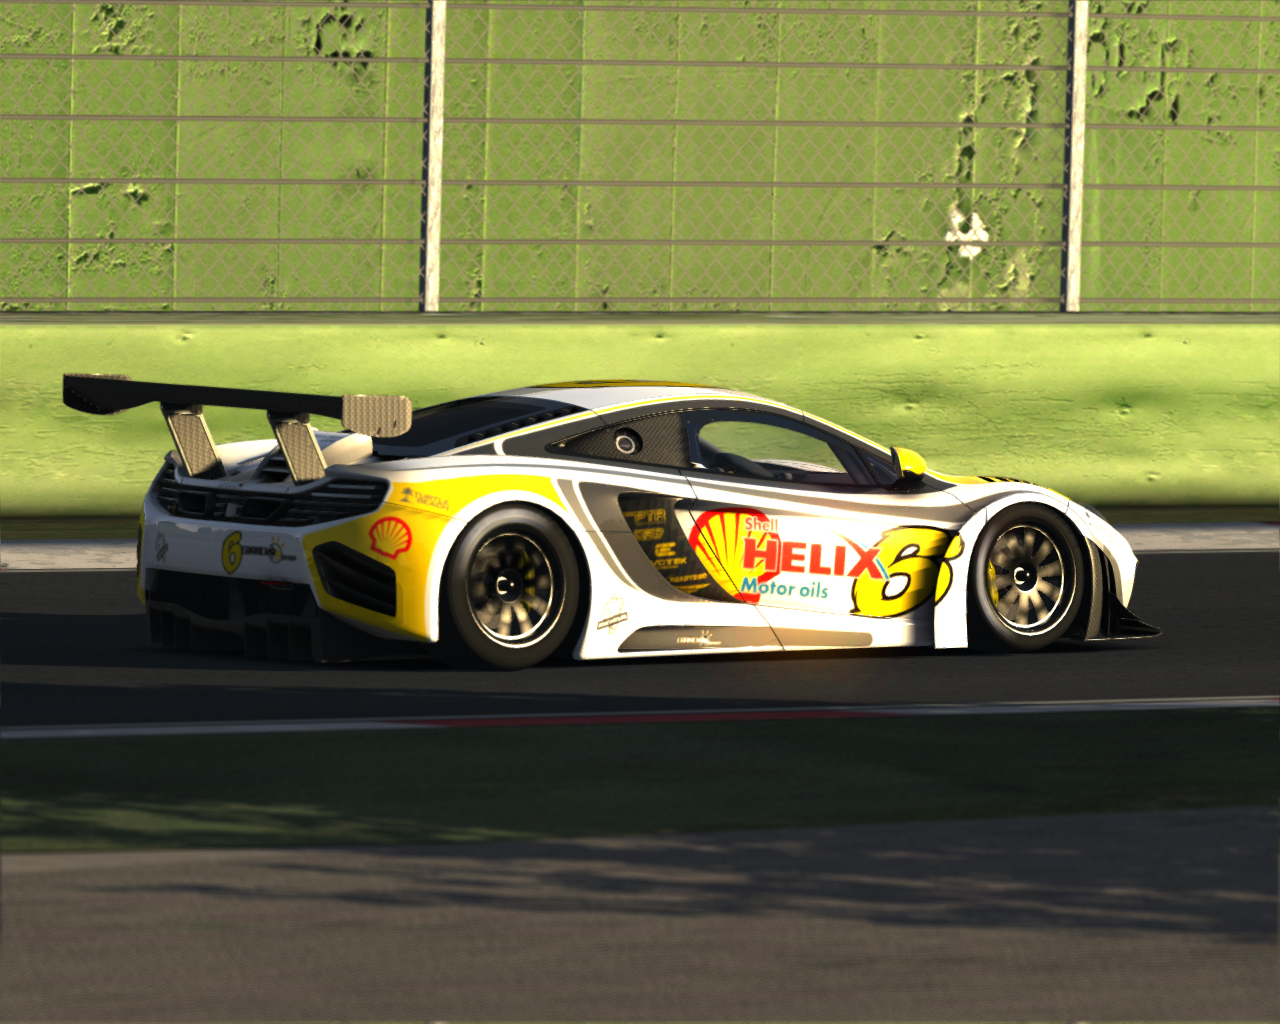 Screenshot_mclaren_mp412c_gt3_imola_5-7-2014-10-32-44.jpg